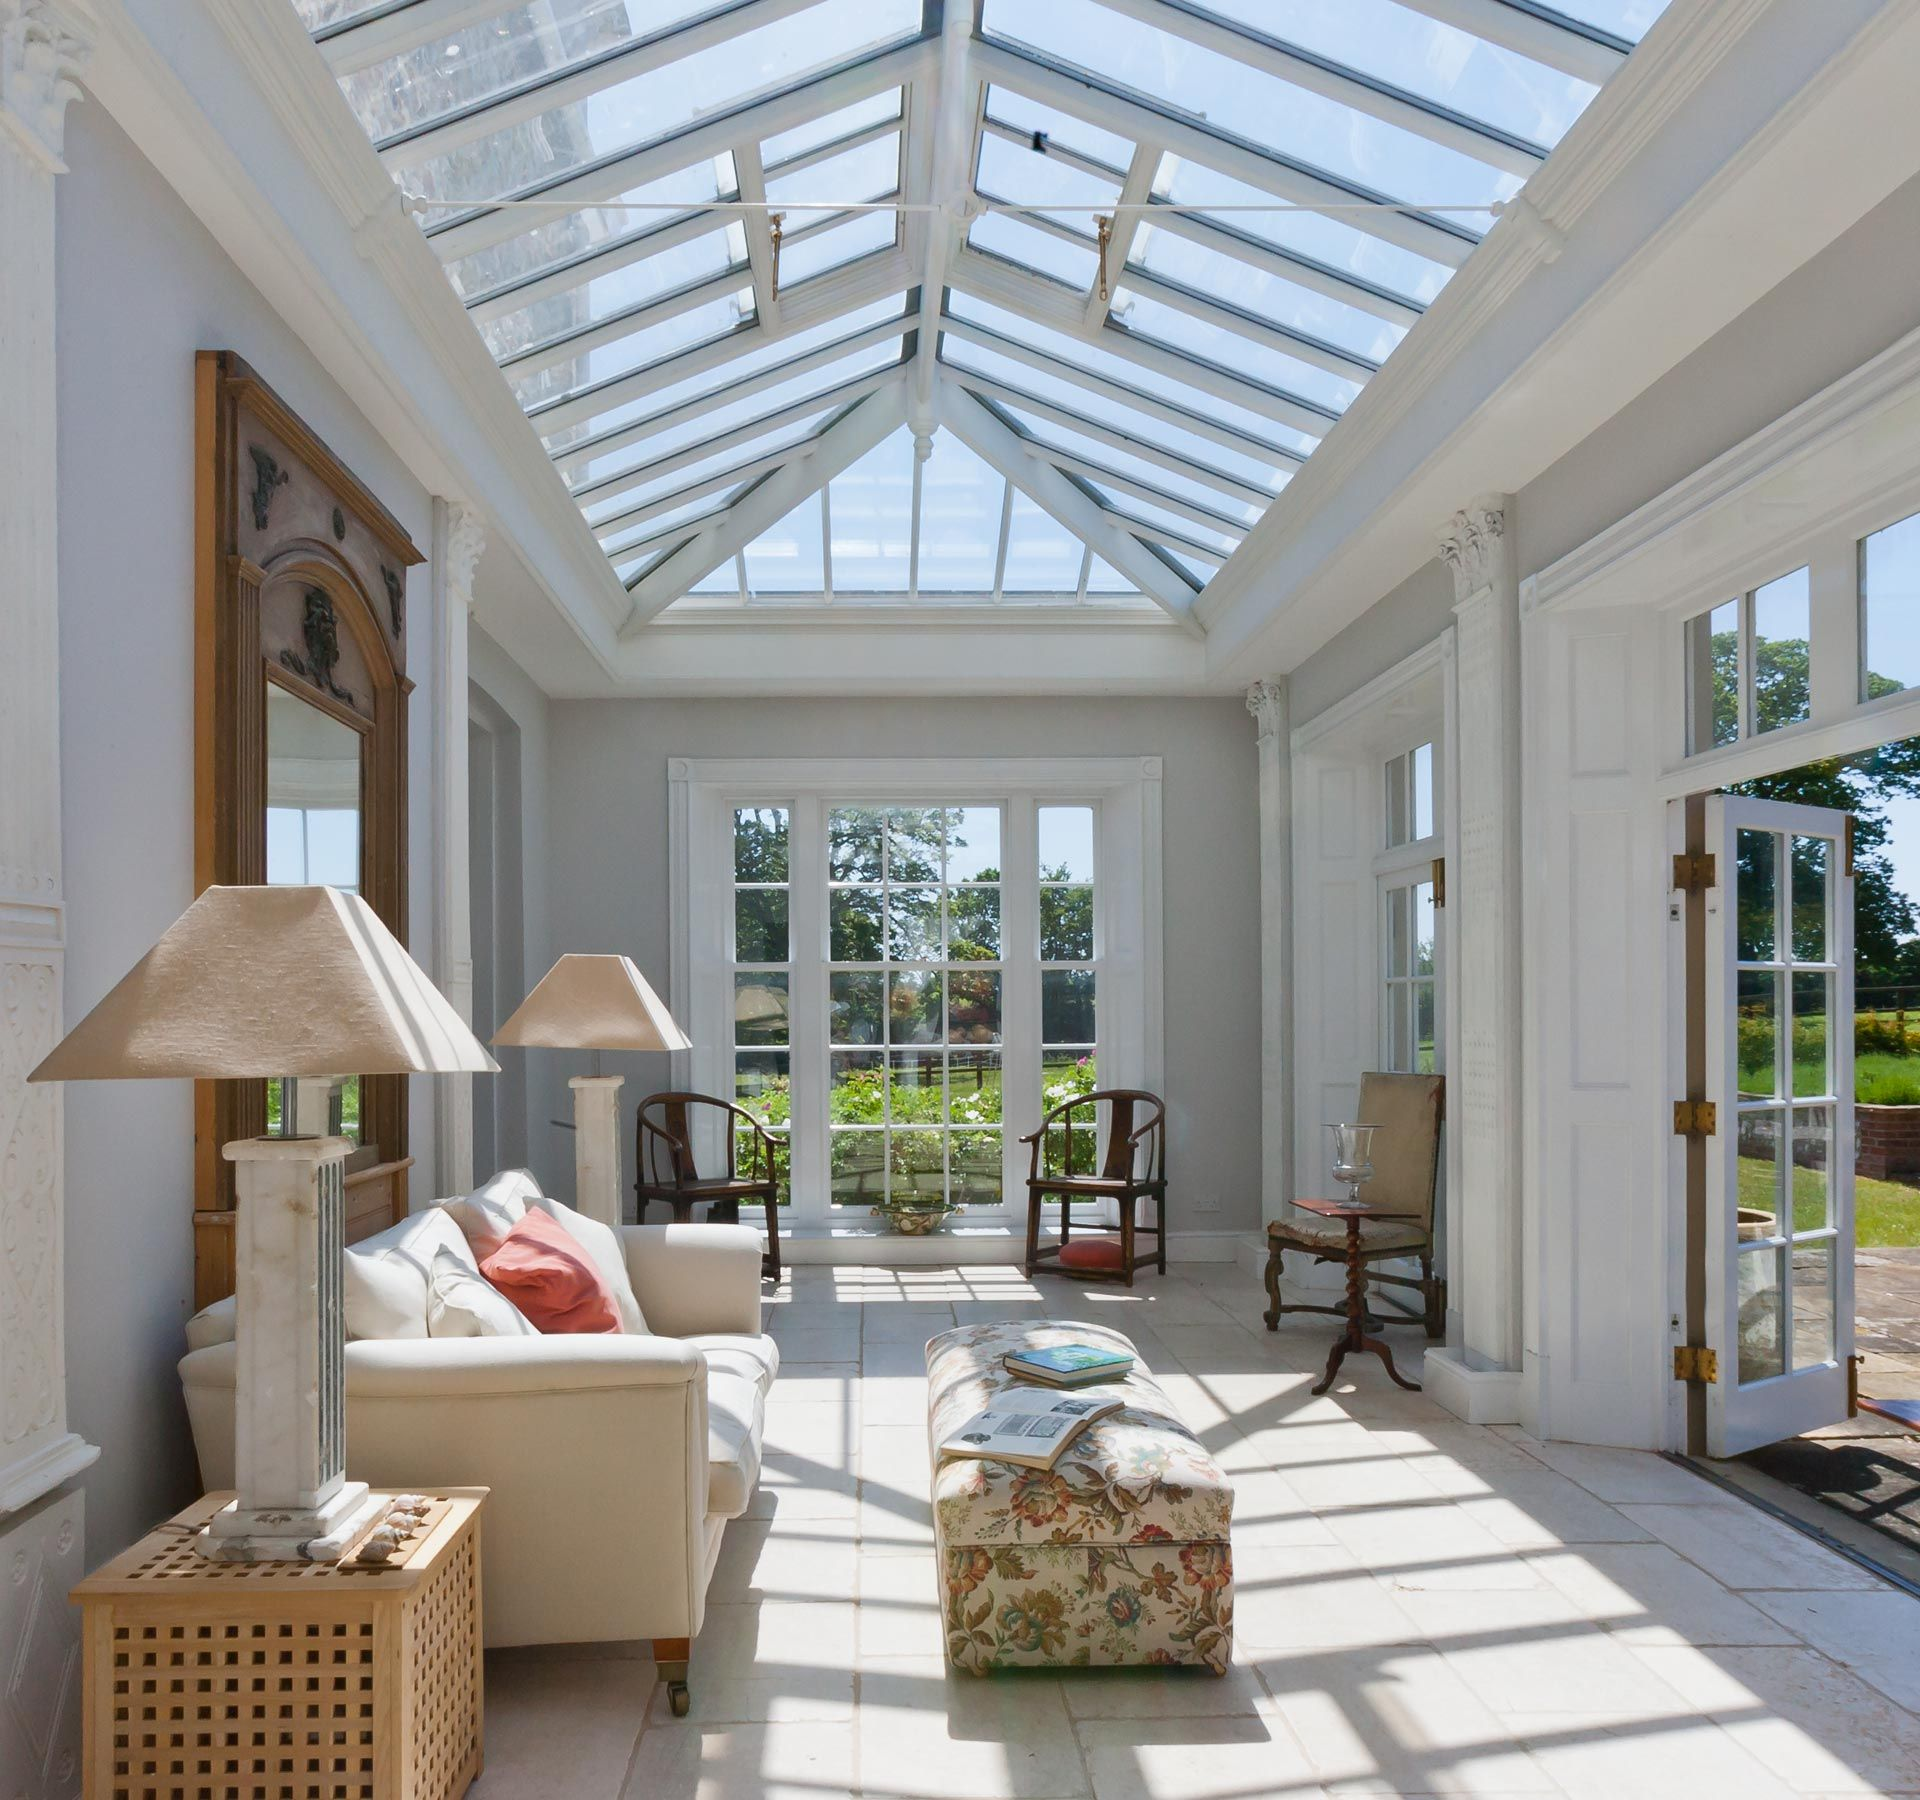 Internal view of a bespoke orangery conservatories for Orangery ideas uk